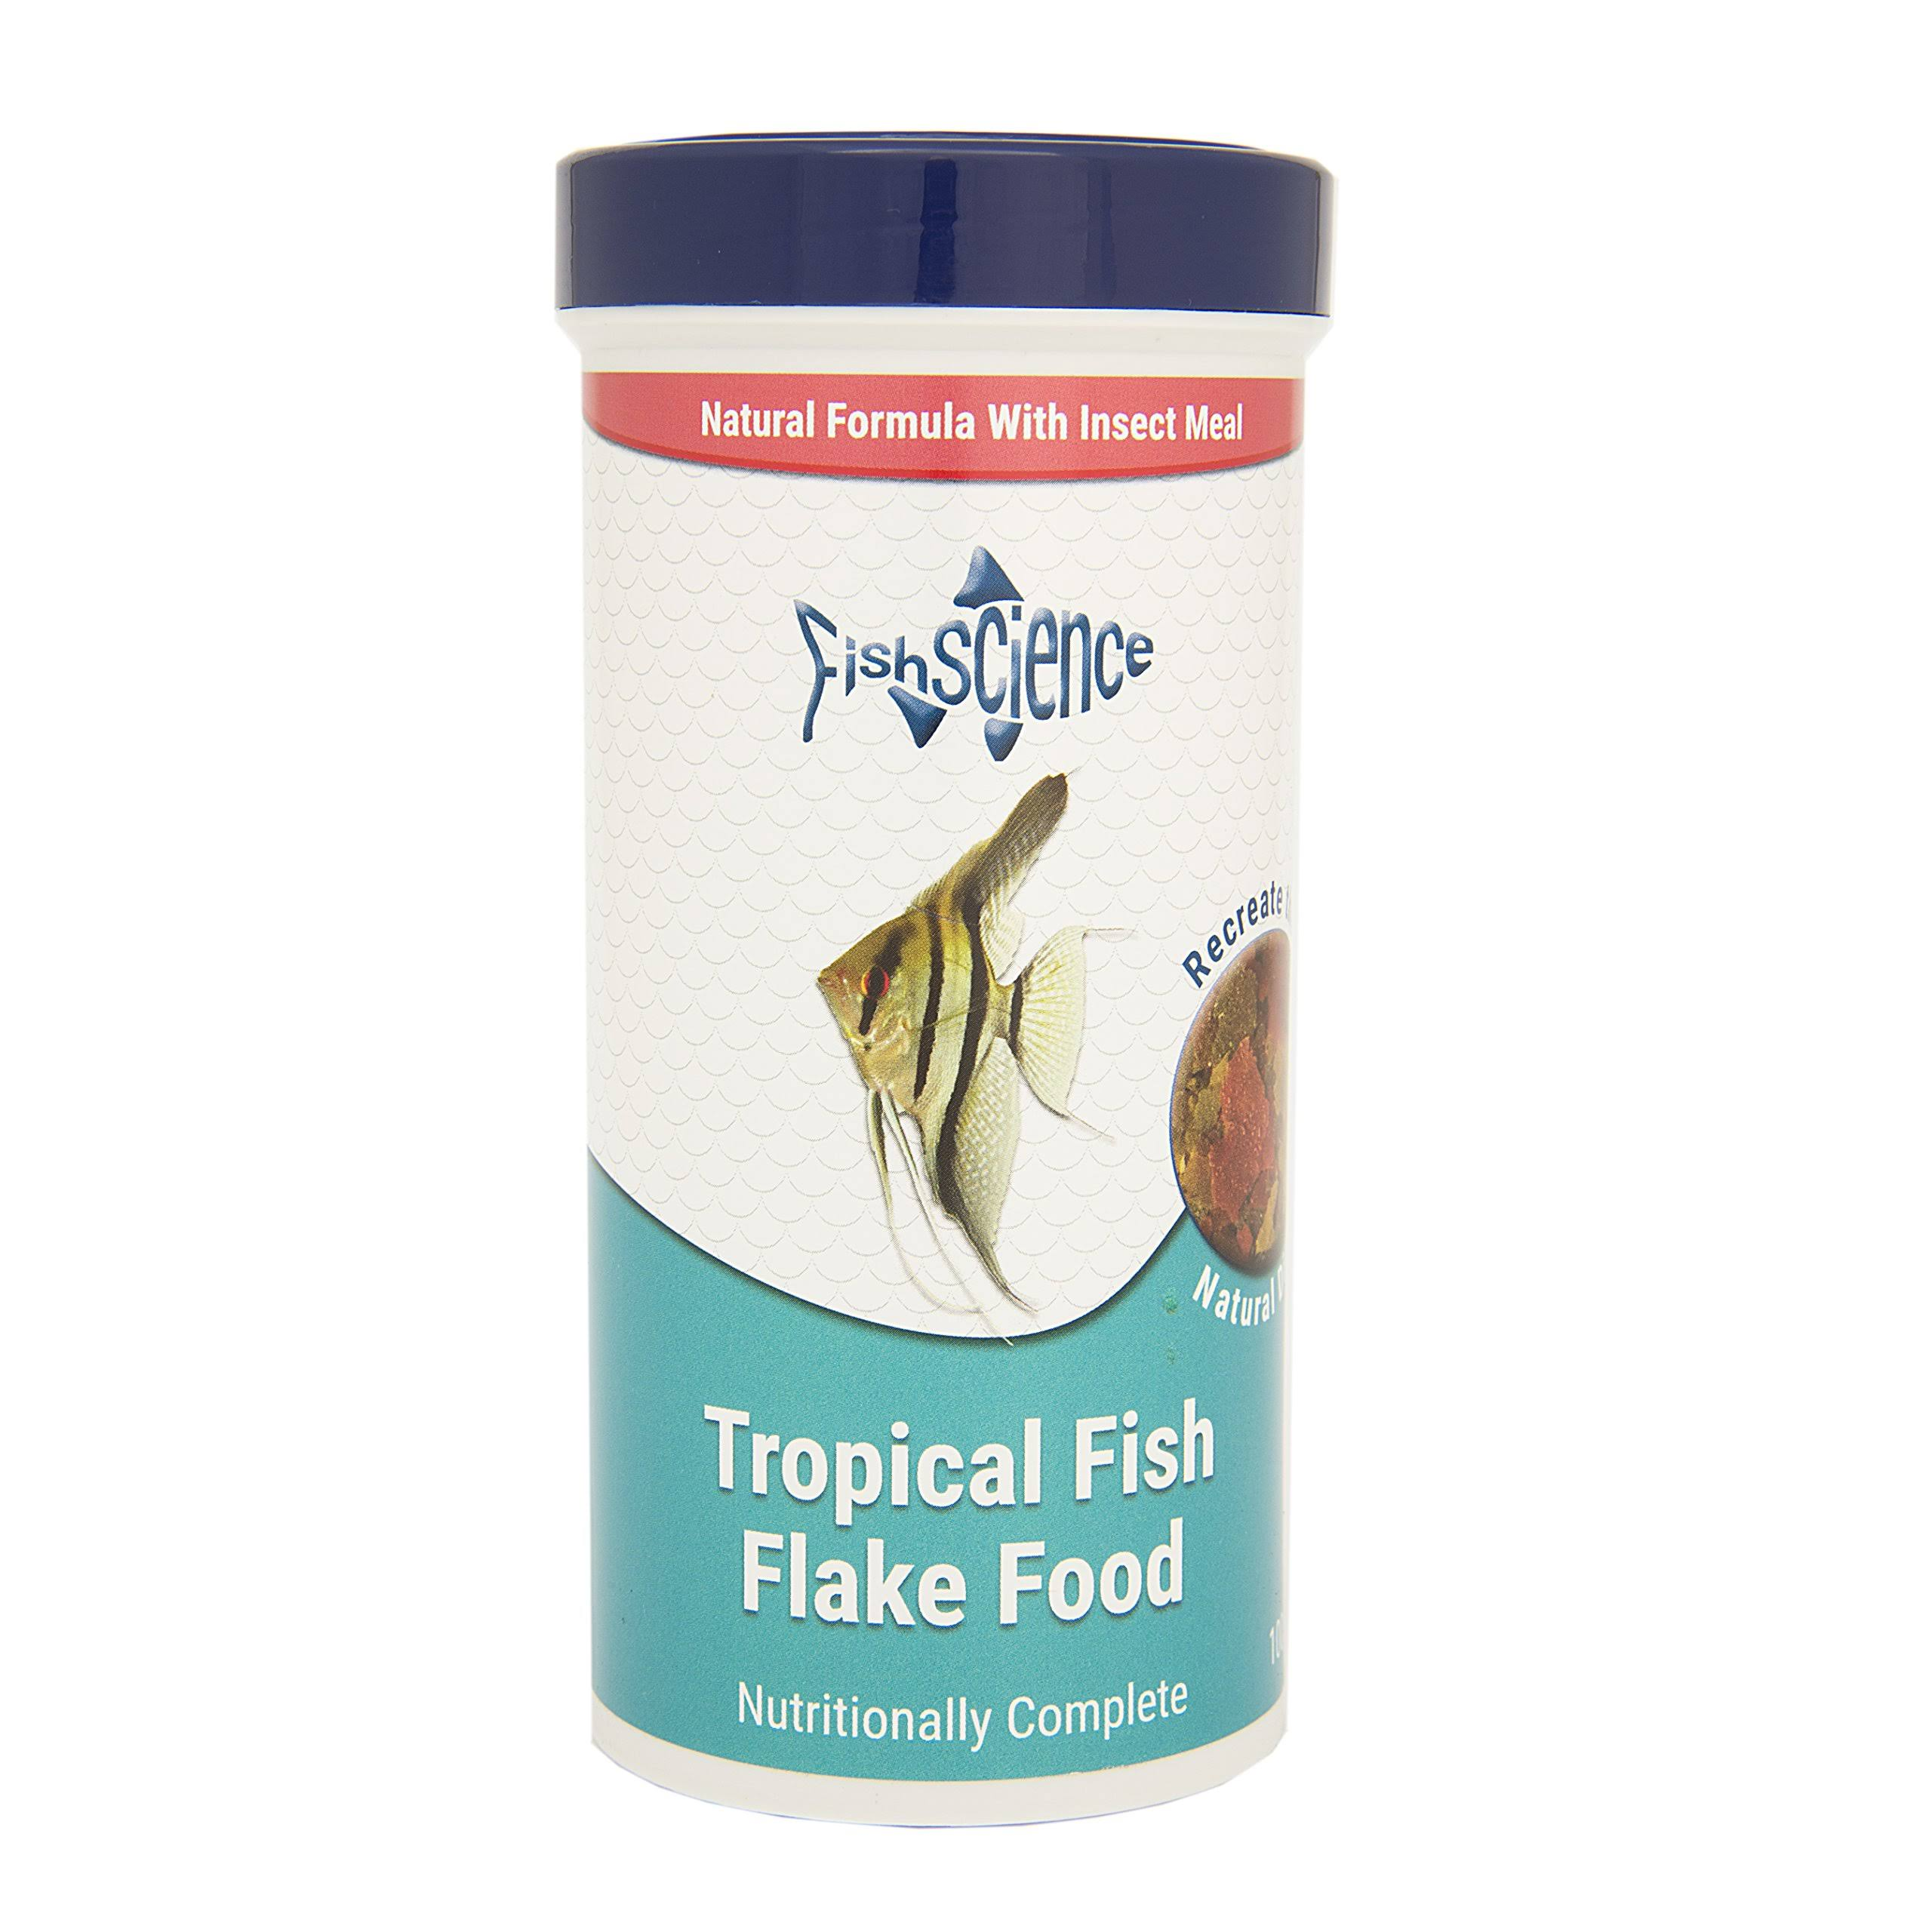 FishScience Tropical Fish Flake Food - 100g